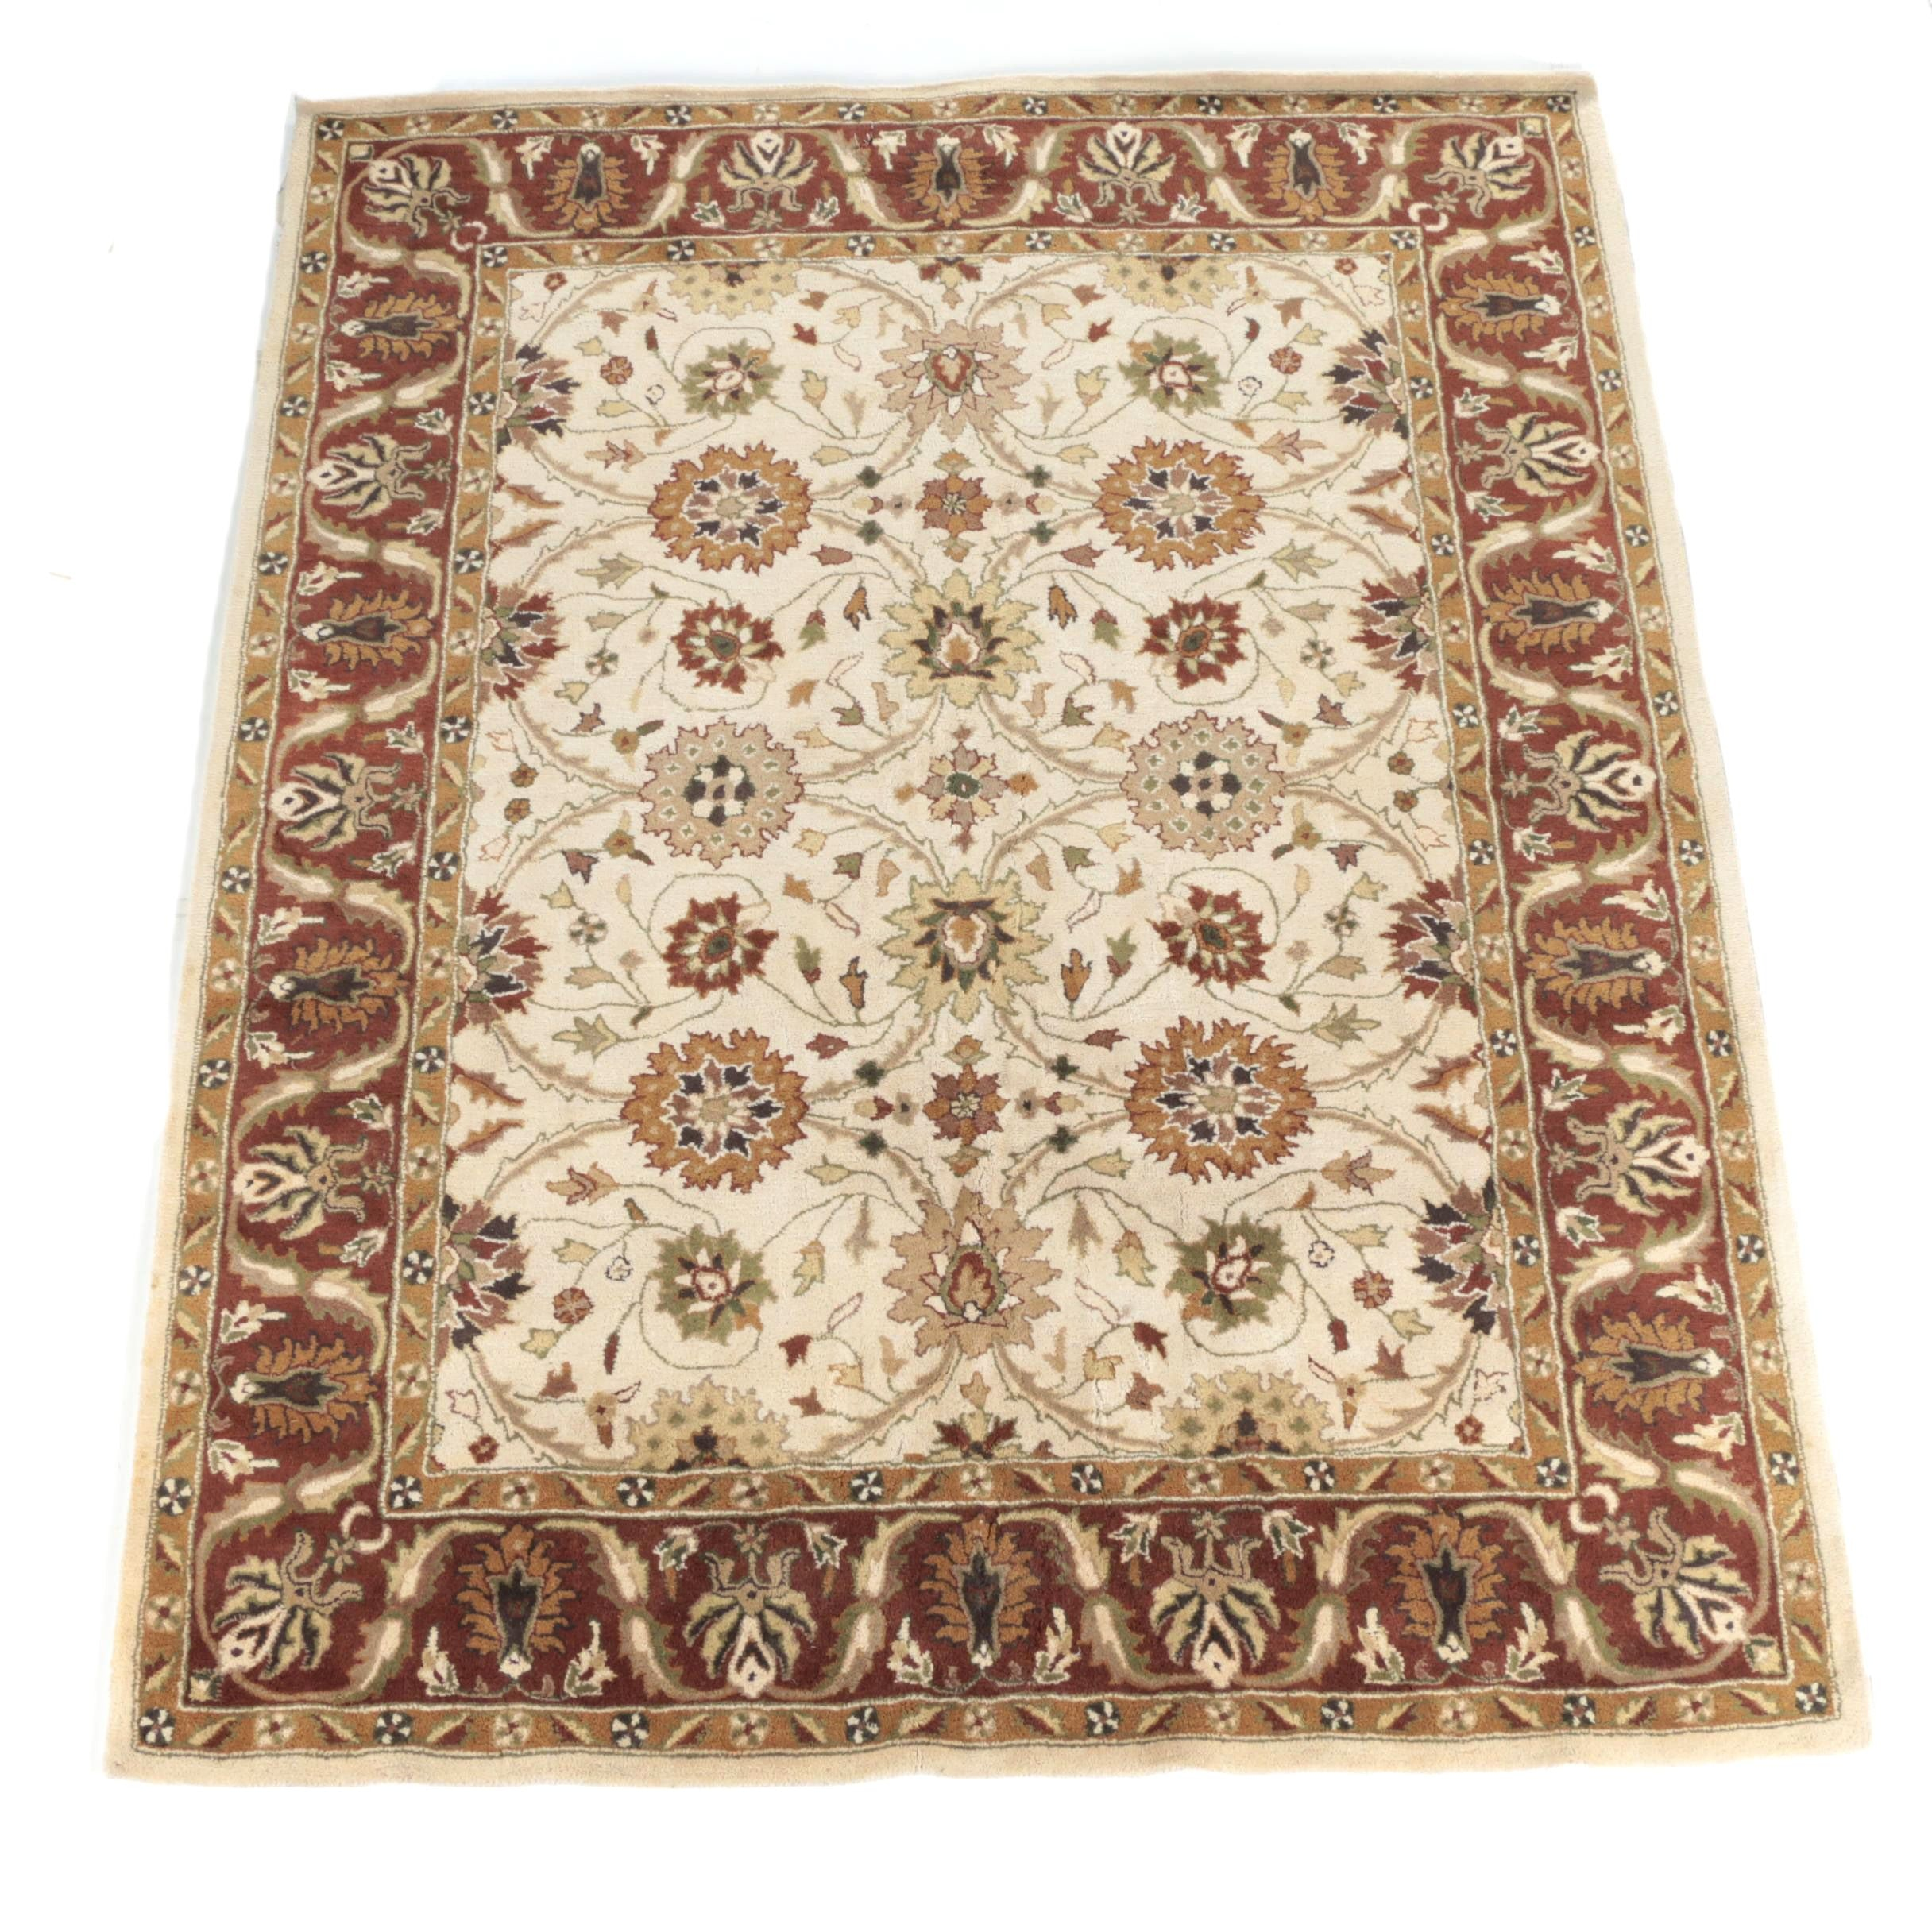 Hand-Tufted Indo-Persian Wool Area Rug